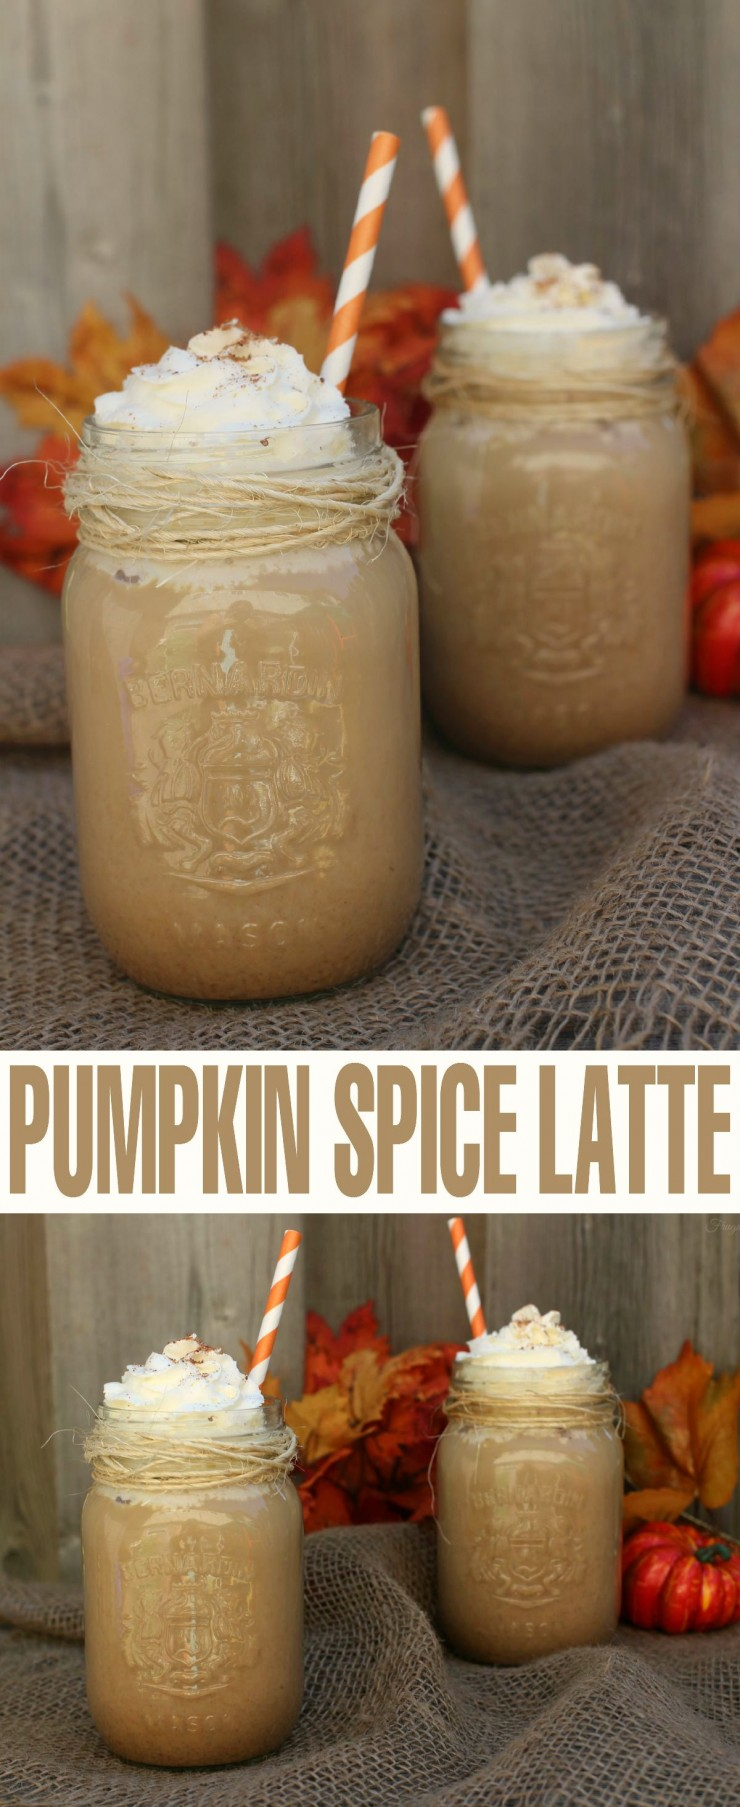 This Pumpkin Spice Latte is a classic fall beverage that can be enjoyed both hot and cold!